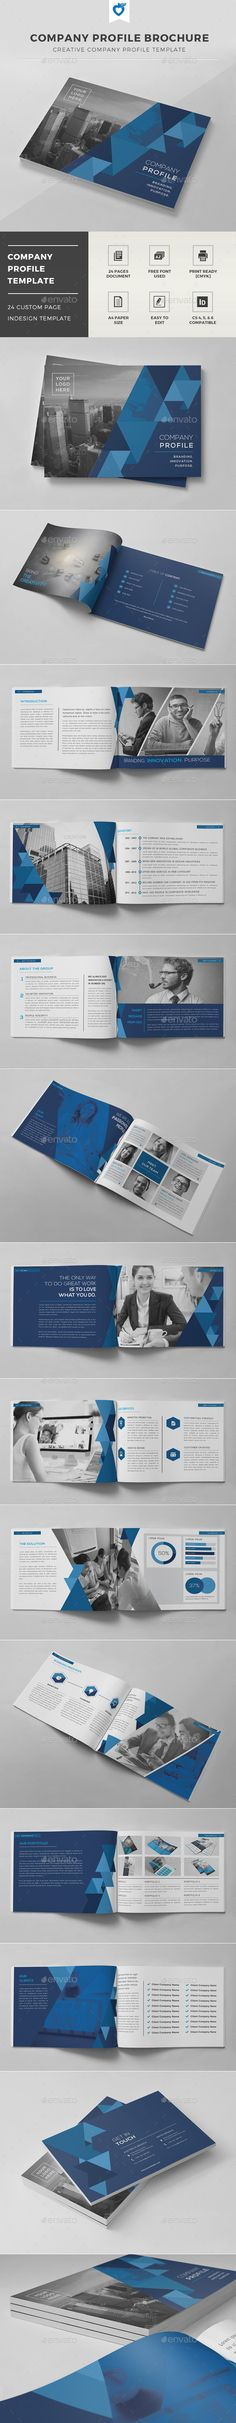 A4 Horizontal Business Profile Design firms and Brochures - it company profile template